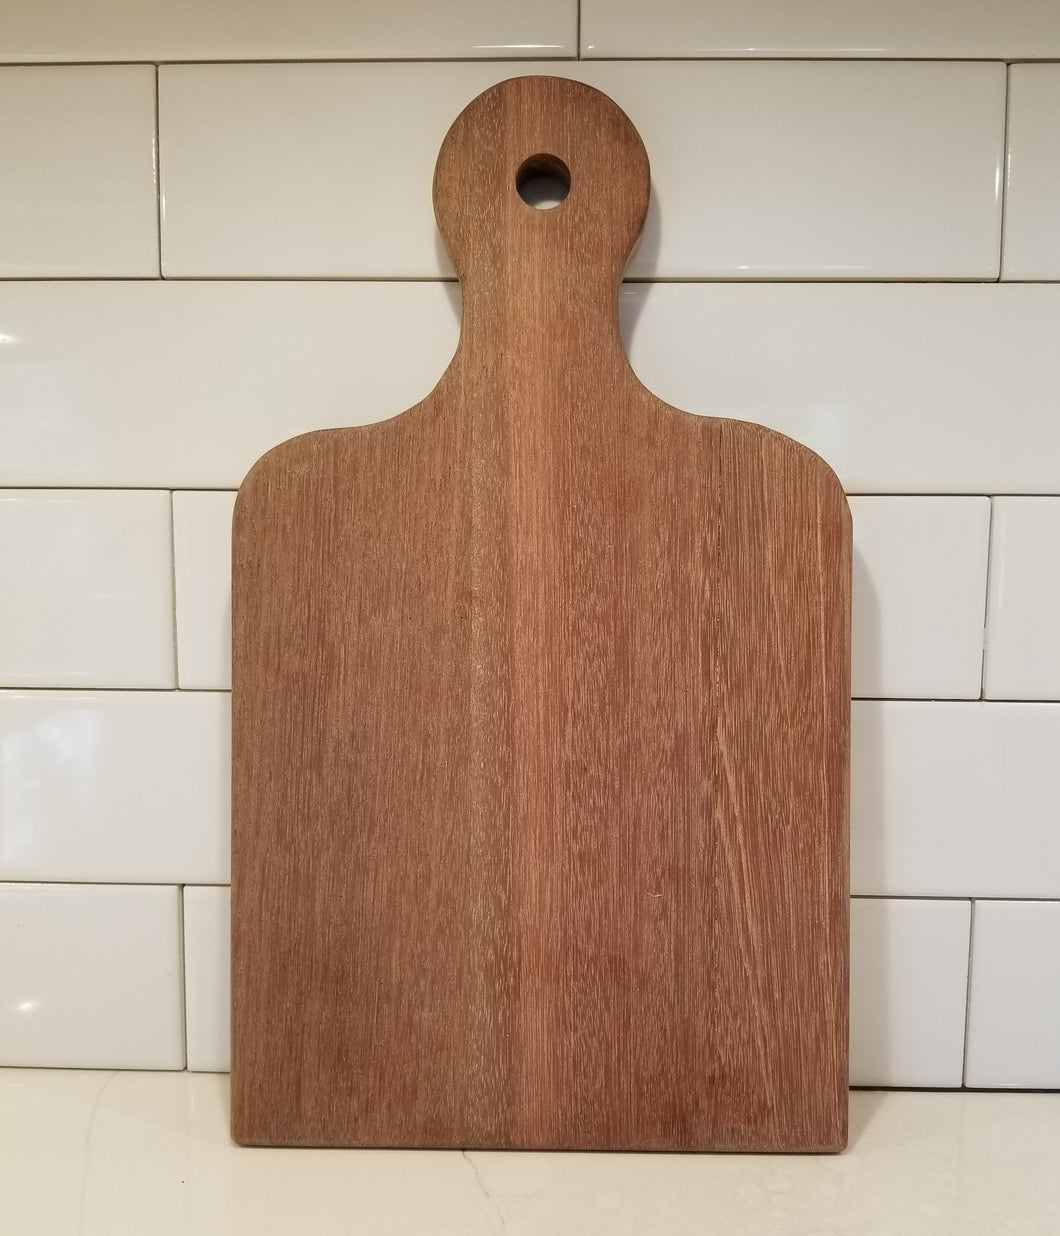 Oak, wood cutting, or bread board.